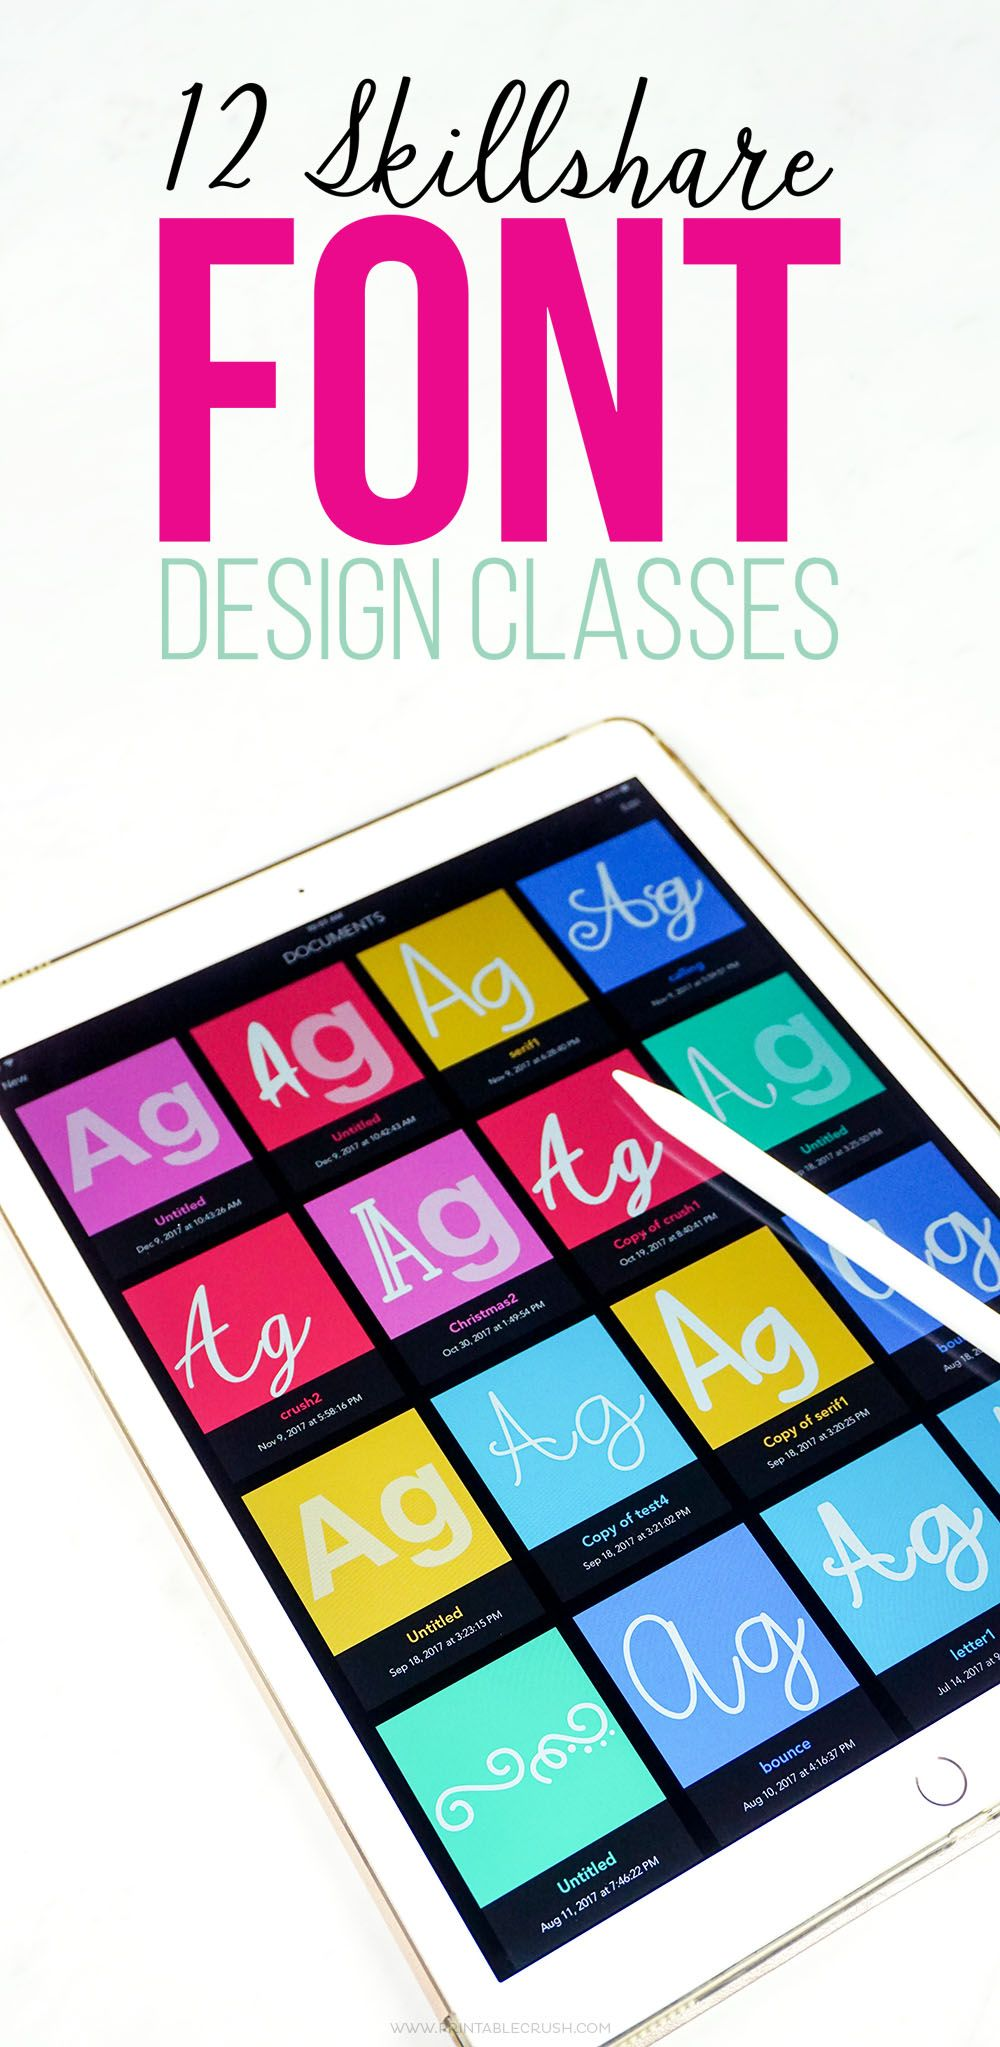 12 Skillshare Font Design Classes Design classes, Create